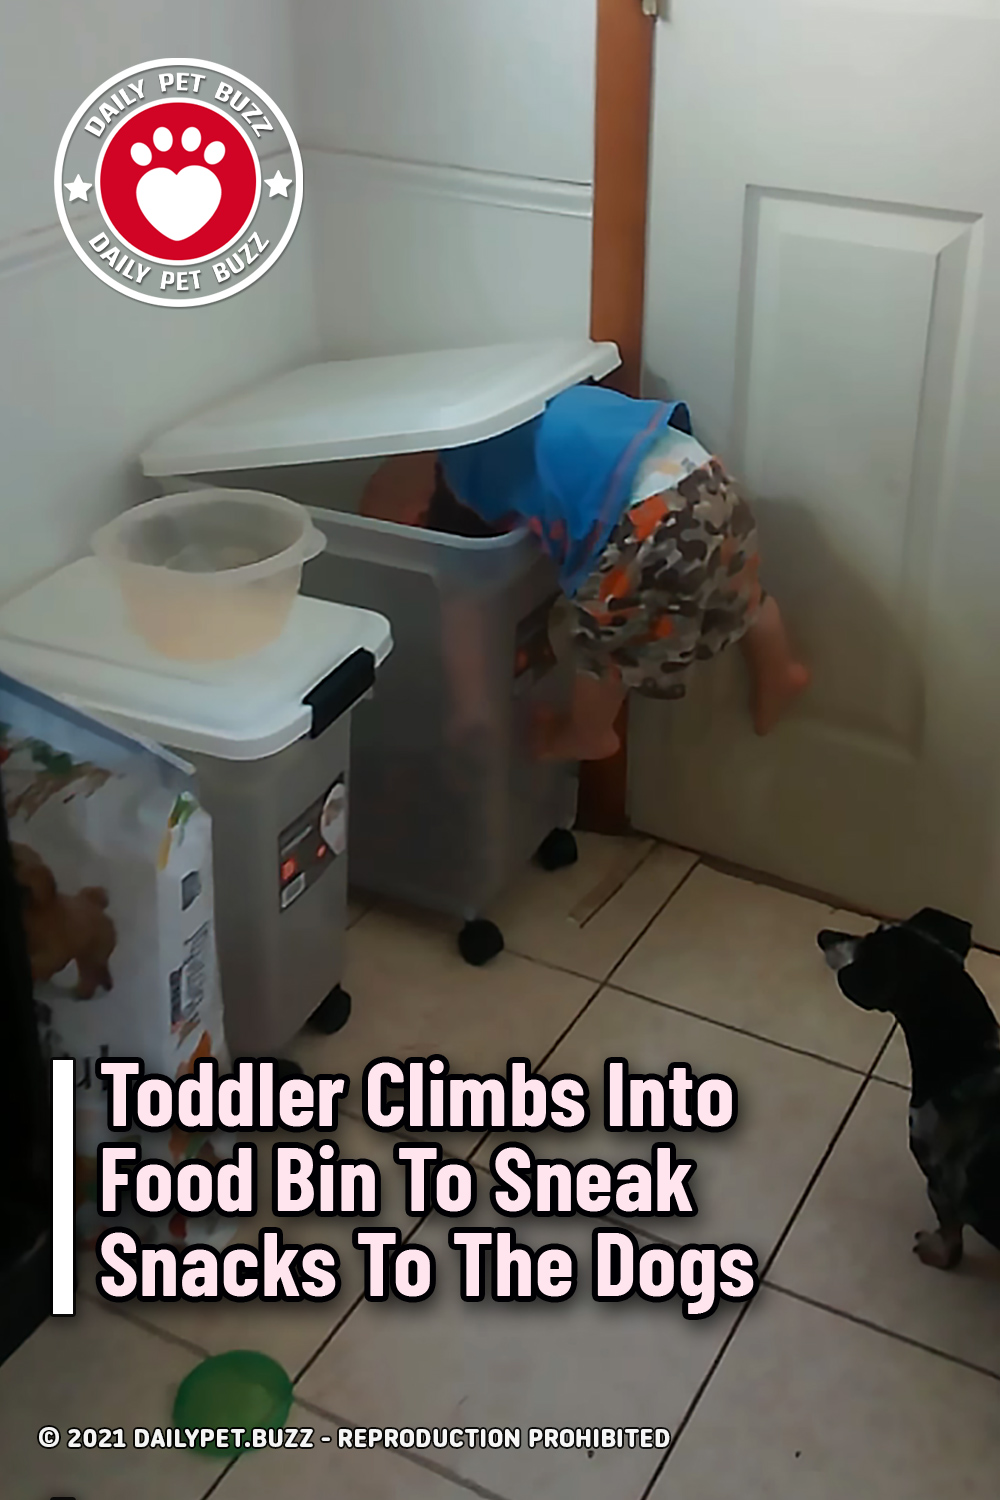 Toddler Climbs Into Food Bin To Sneak Snacks To The Dogs